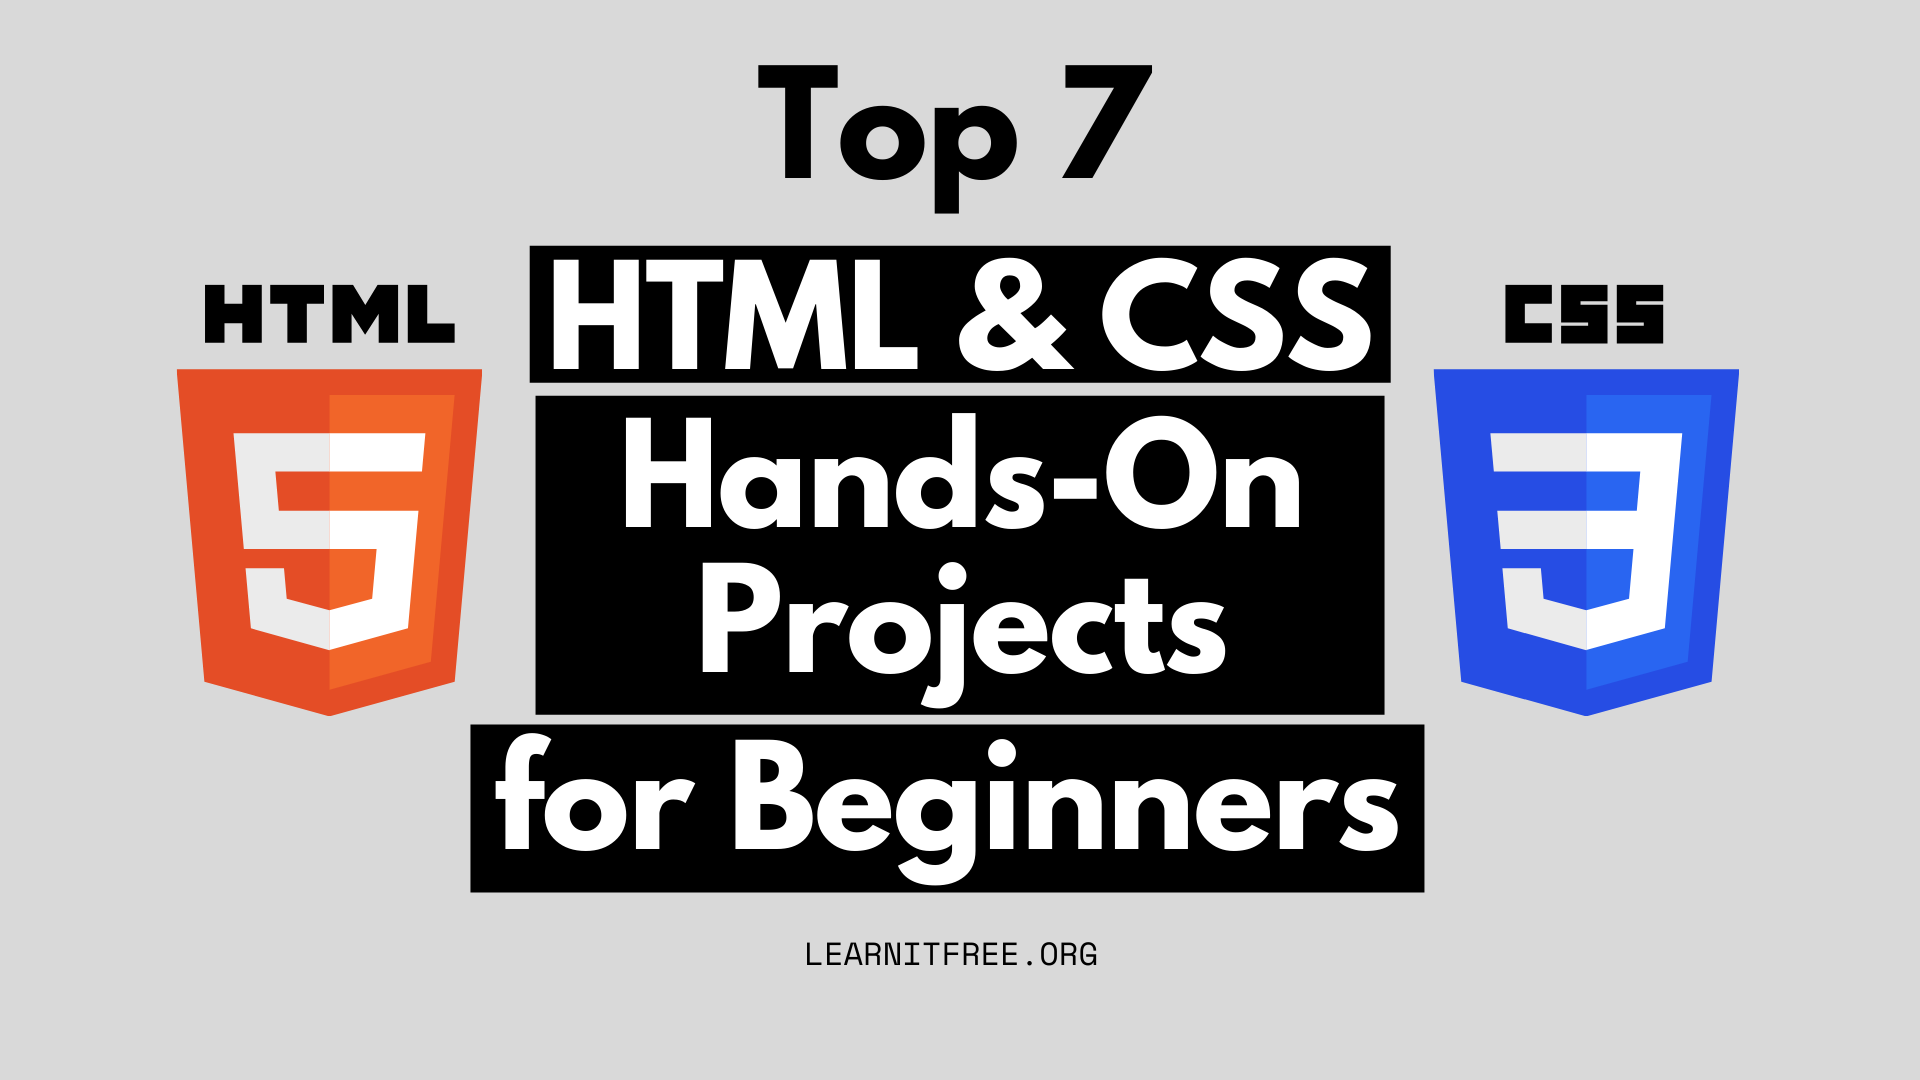 What S A Better Way To Learn Html And Css Than To Make Something From It Let S See The Top 7 Html Css Projec In 2020 Learn Html And Css Learn Web